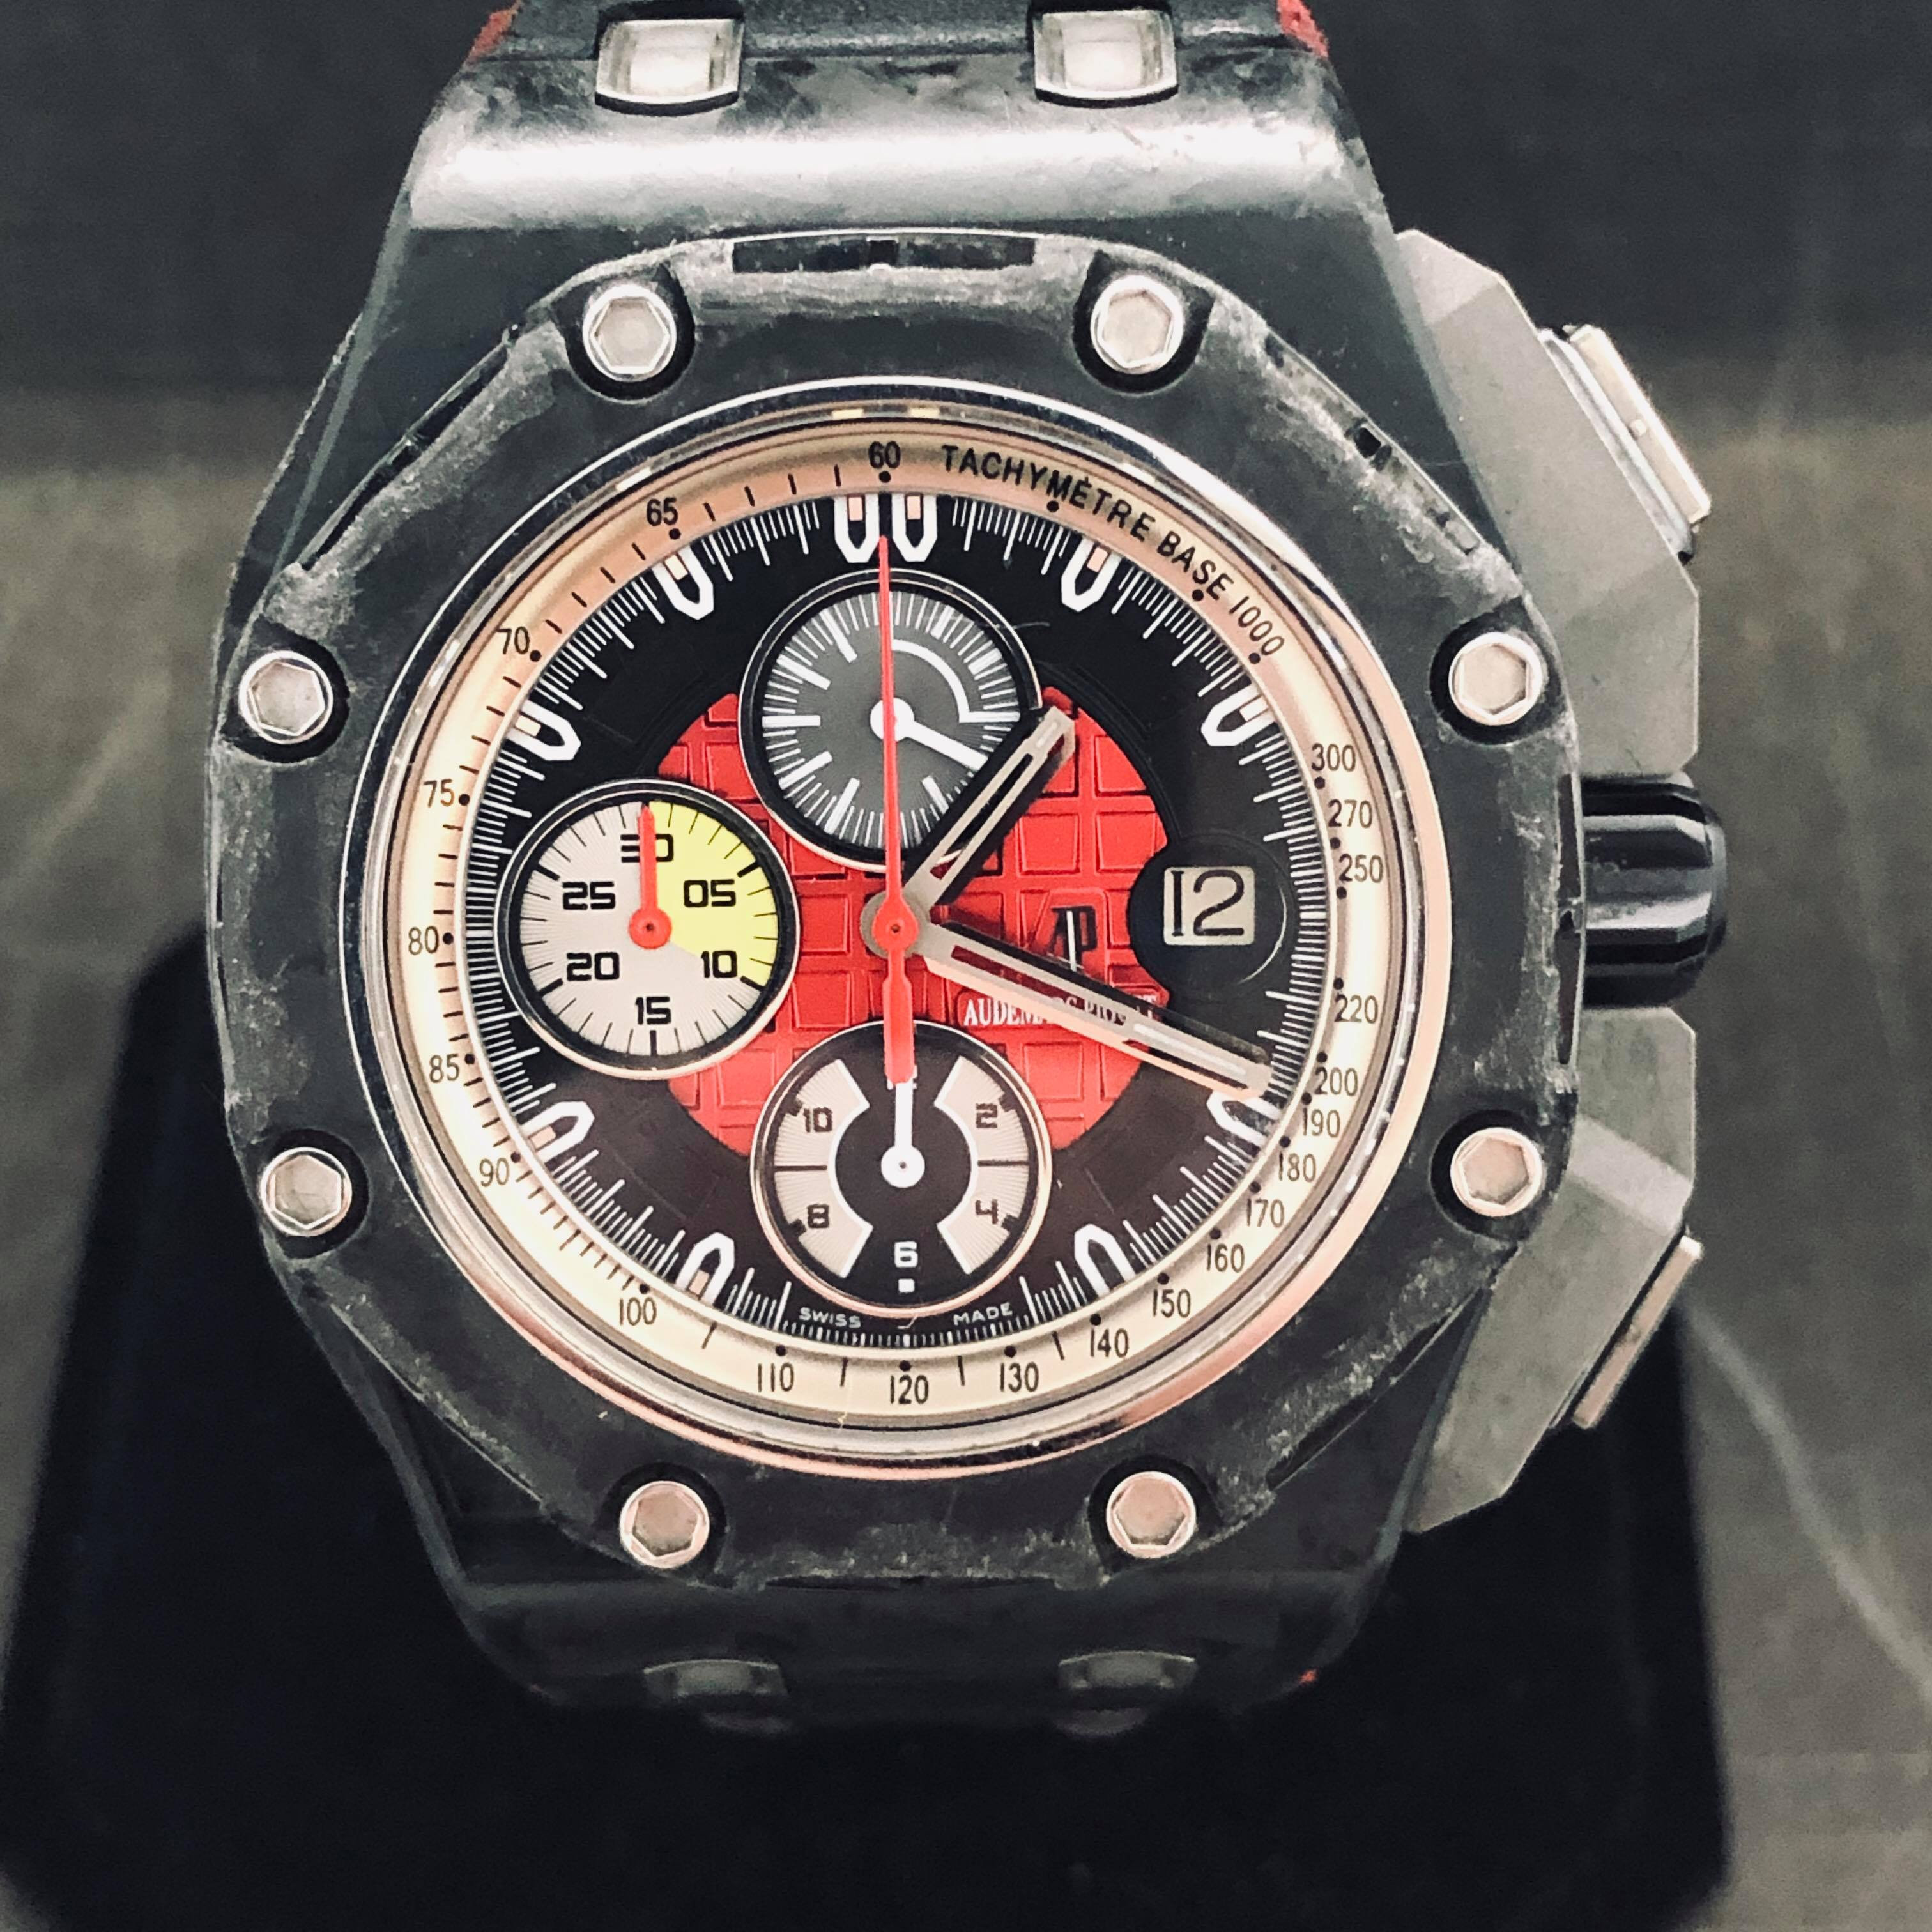 Audemars Piguet Royal Oak Offshore Grand Prix Carbon Limited Full